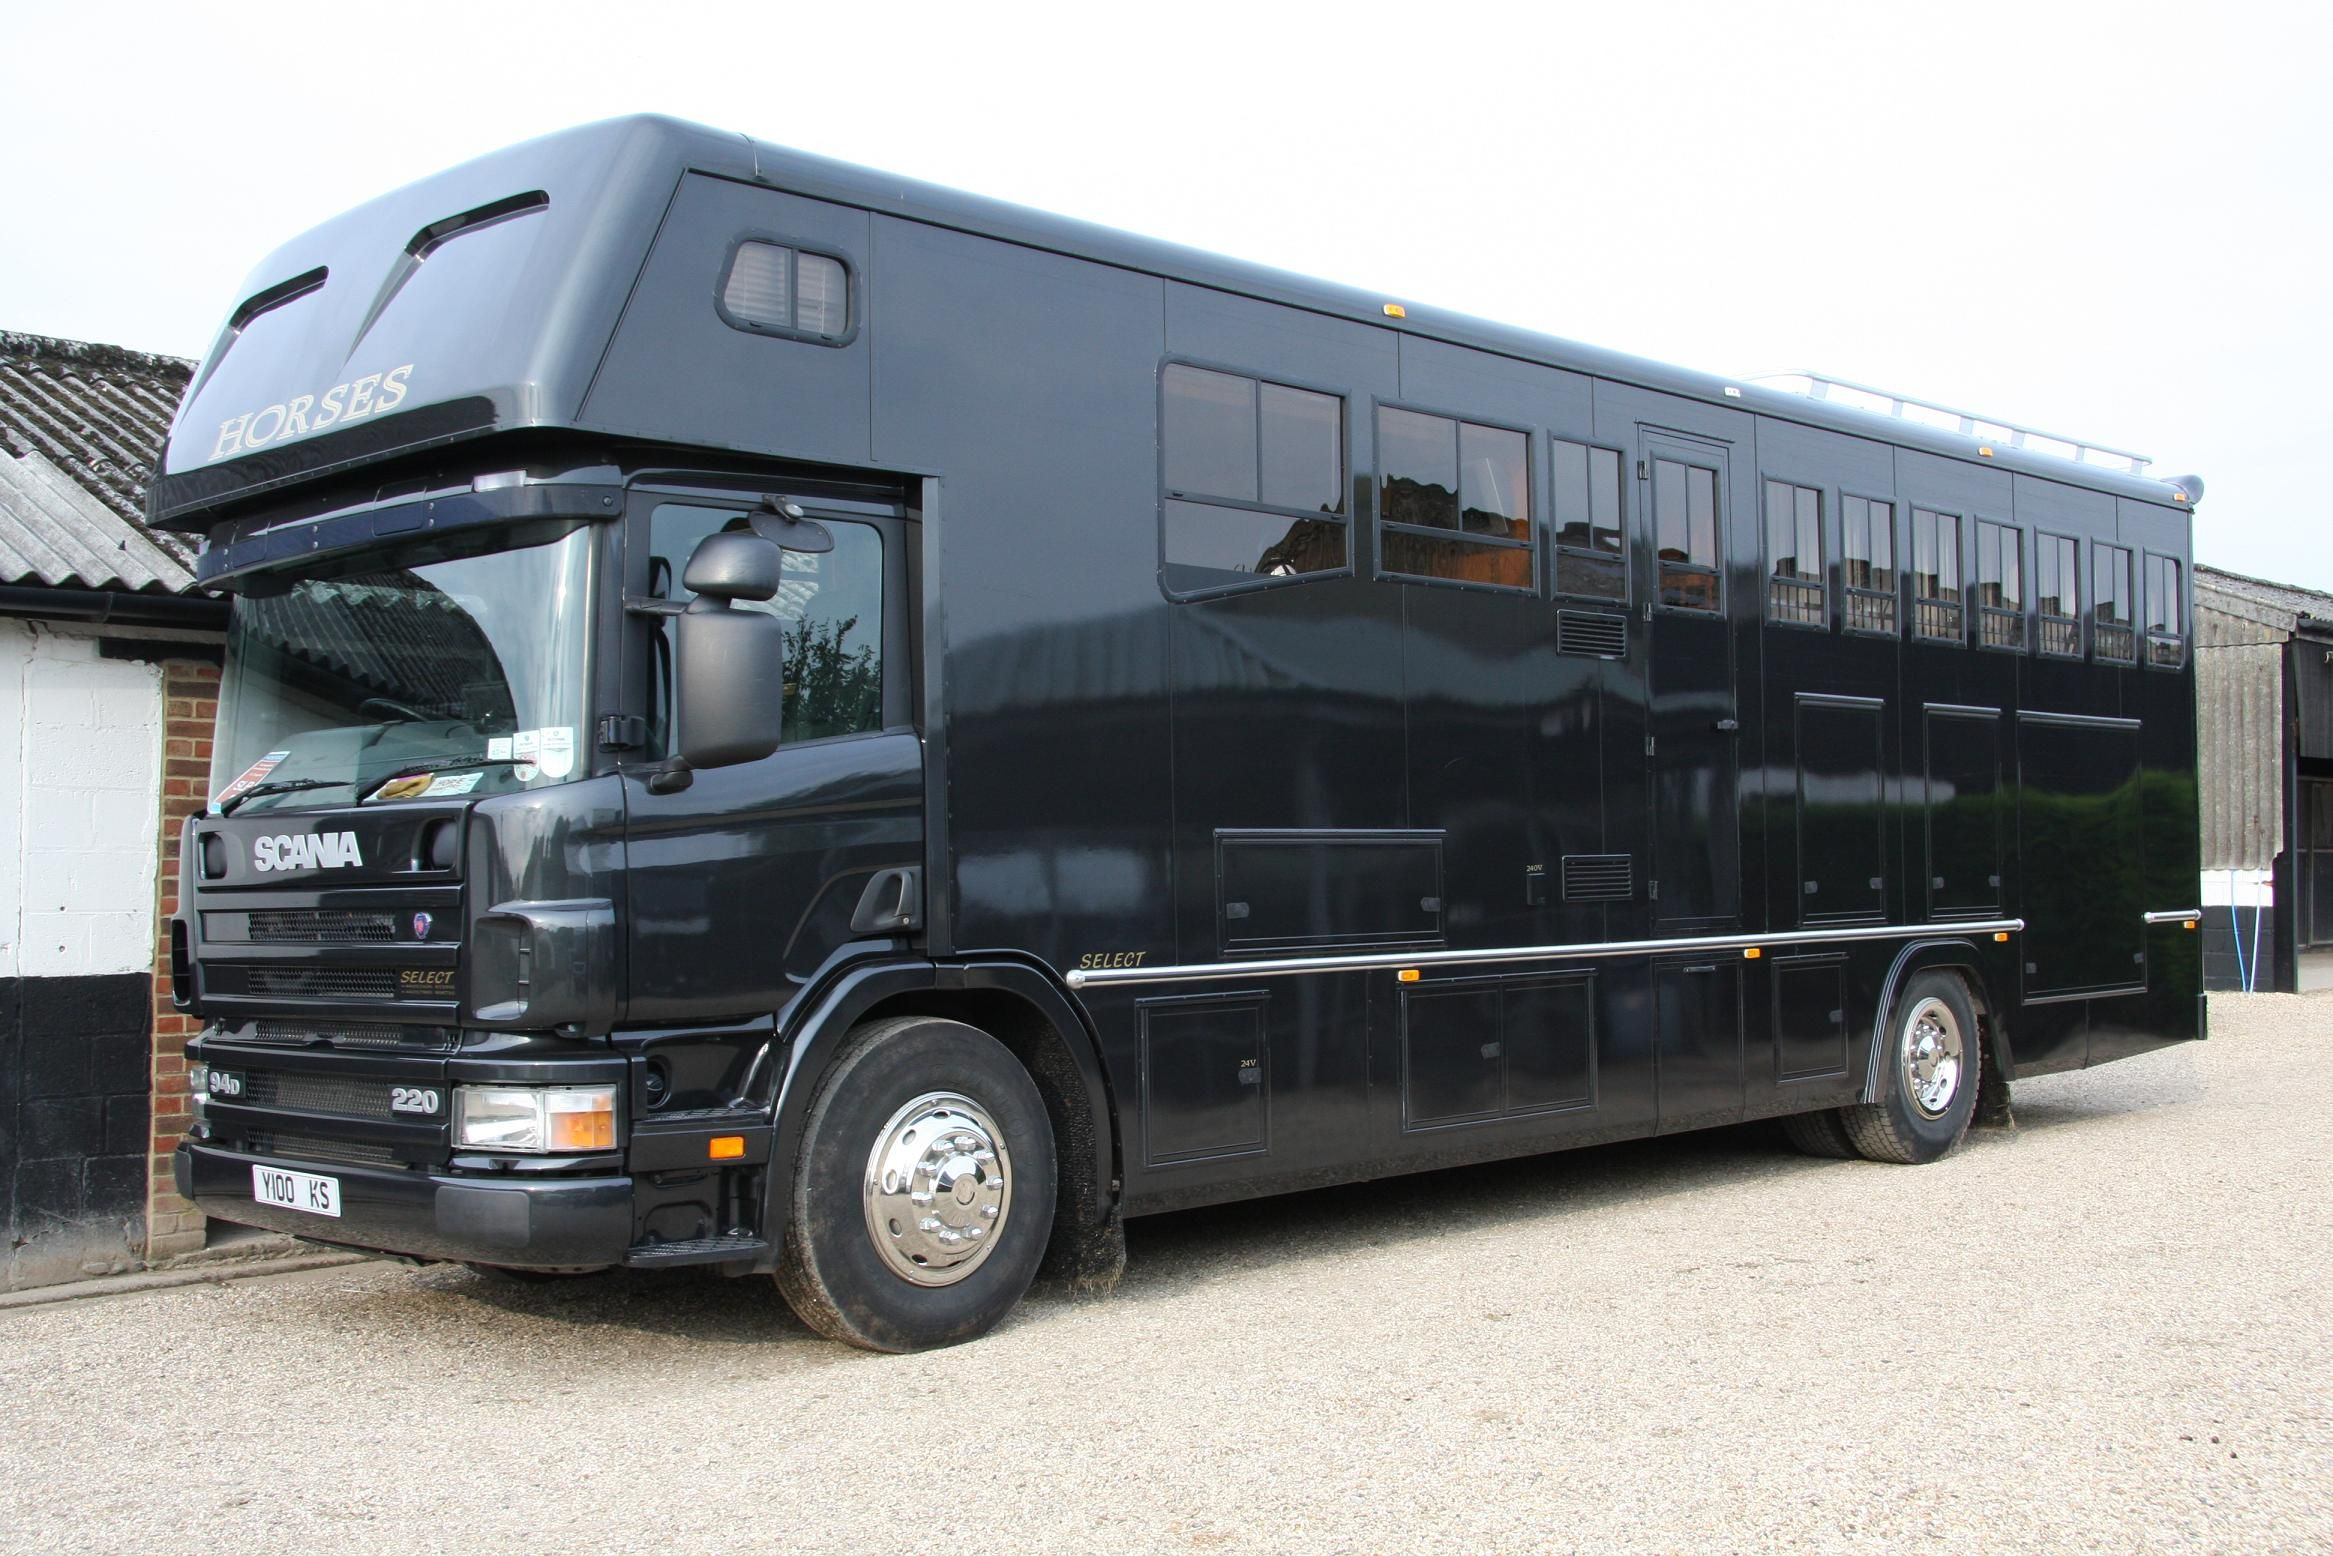 5 Horse #Scania + Living #Horsebox   For sale on #HorseDeals